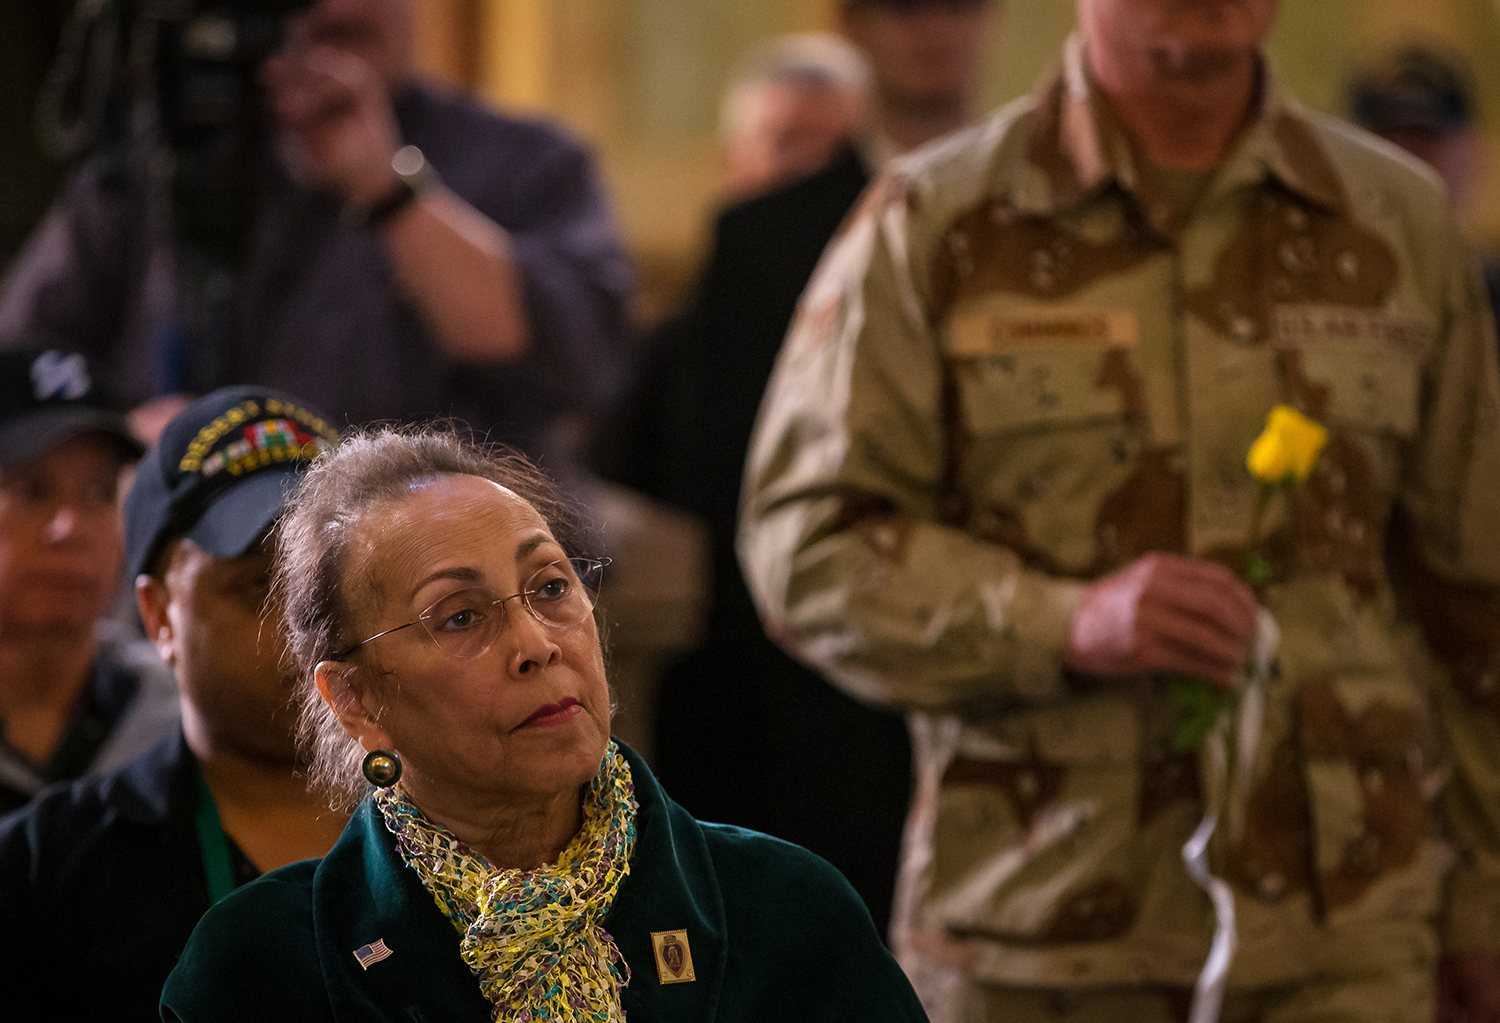 Phillipa Porter, the mother of Marine Lance Corporal Christian Porter who was killed in Operation Desert Storm, watches as yellow roses are presented during a memorial service for the 18 service members from Illinois that lost their lives during Operations Desert Storm and Desert Shield during the 28th annual Desert Storm Remembrance Ceremony hosted by the Illinois Department of Veterans' Affairs at the Illinois State Capitol, Thursday, Feb. 28, 2019, in Springfield, Ill. [Justin L. Fowler/The State Journal-Register]